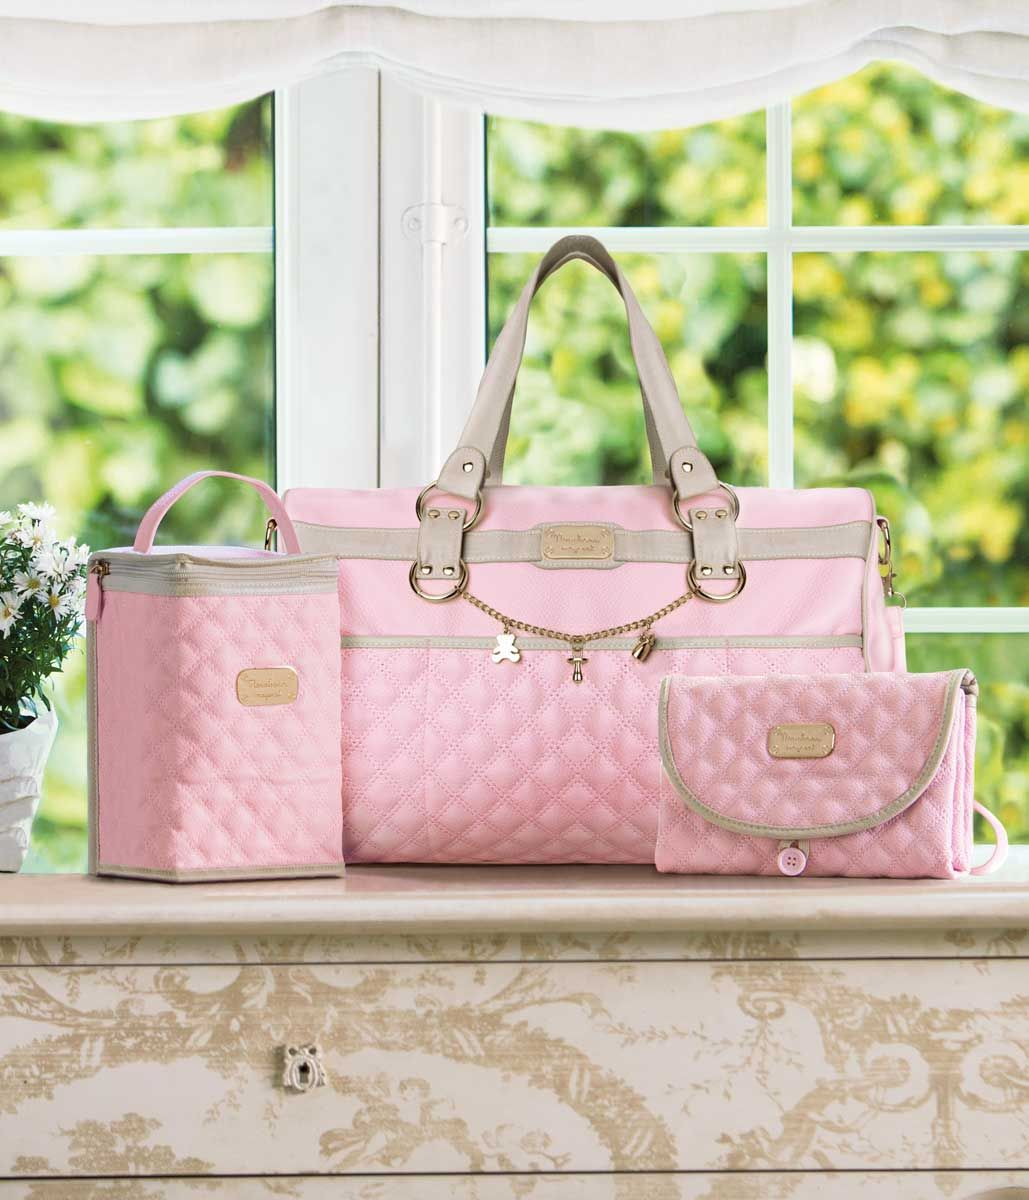 Childcard and gifts   Newborn accessories, Baby bag, Bags